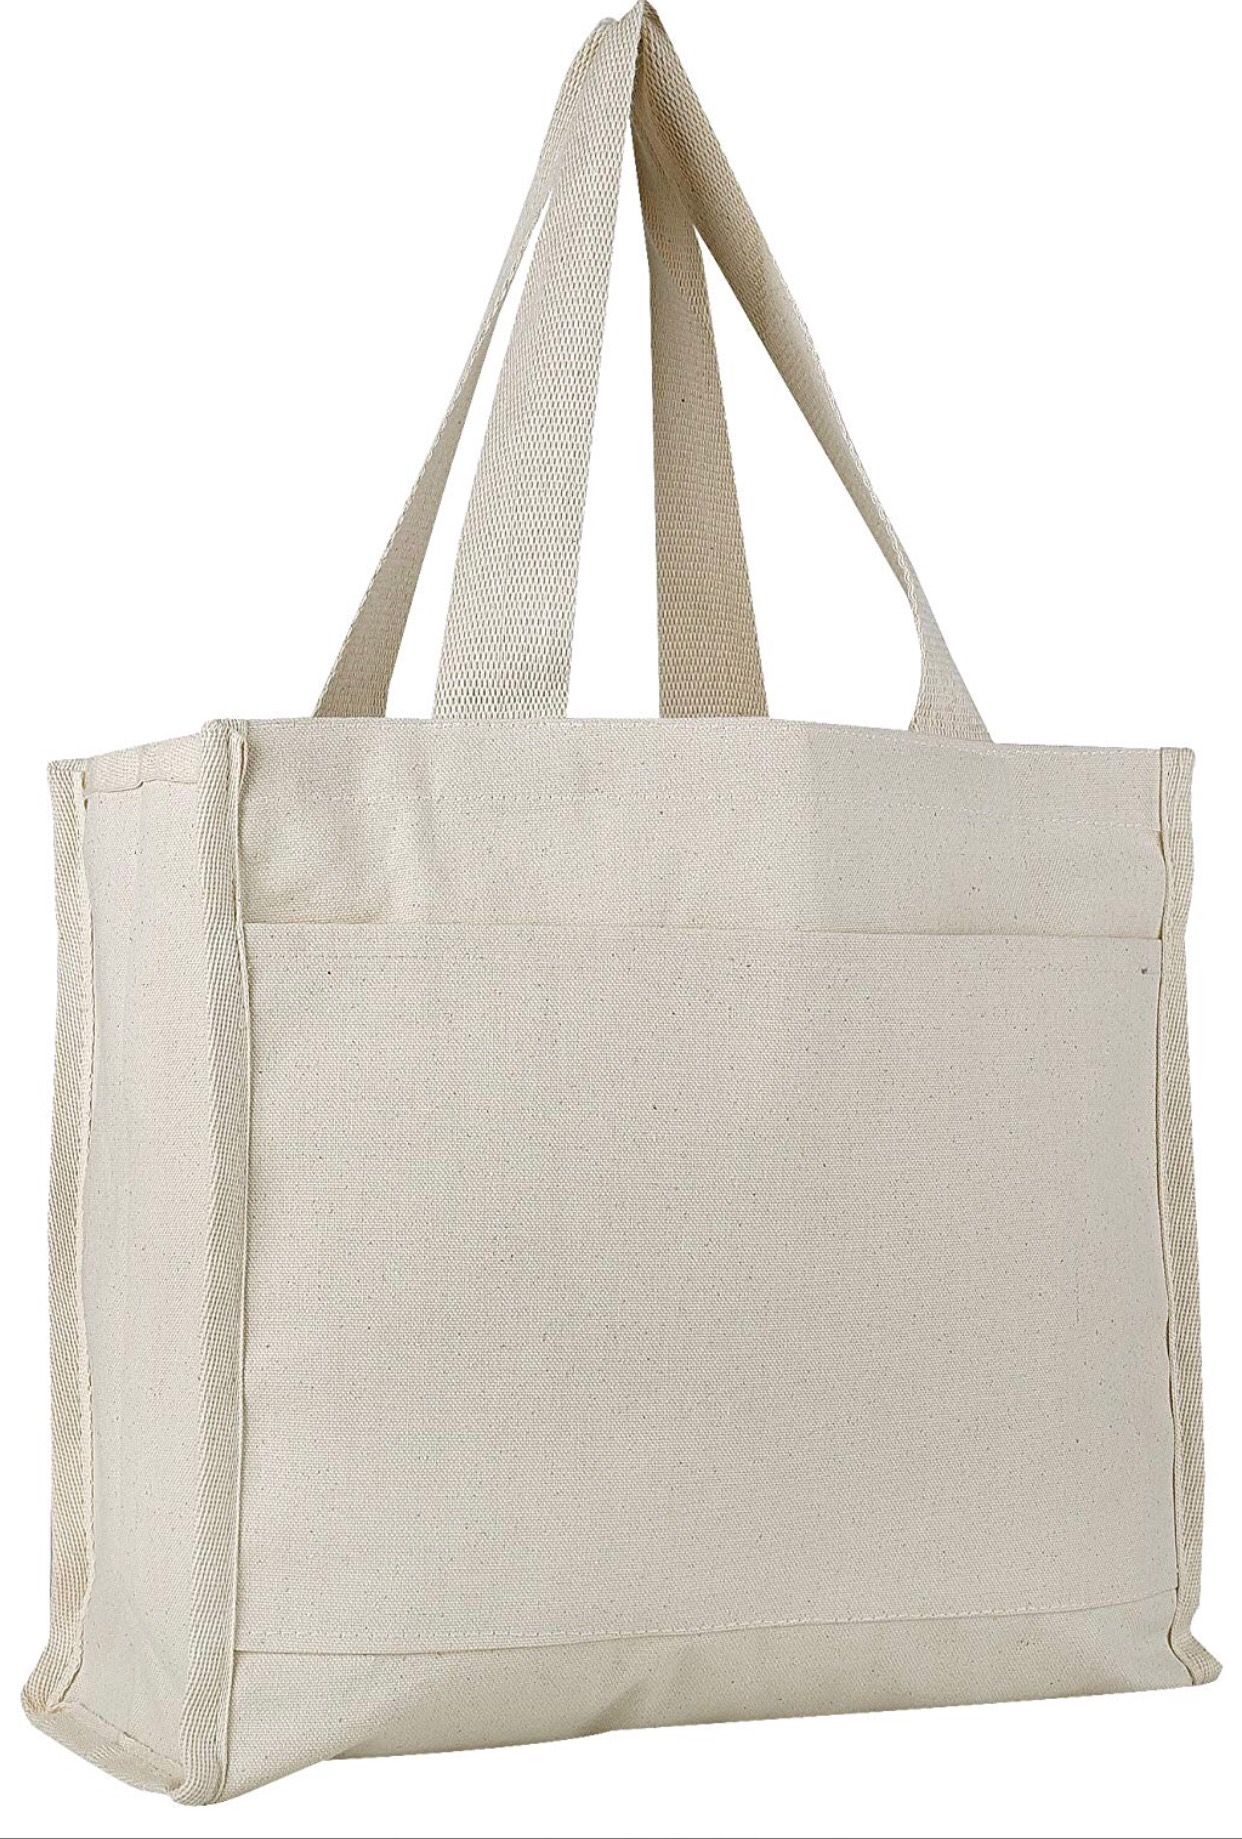 37d22520d3c This beautiful tote bag has a solid natural colored canvas base with  colored trims for a chic but simple look. You are able to take advantage of  the side ...